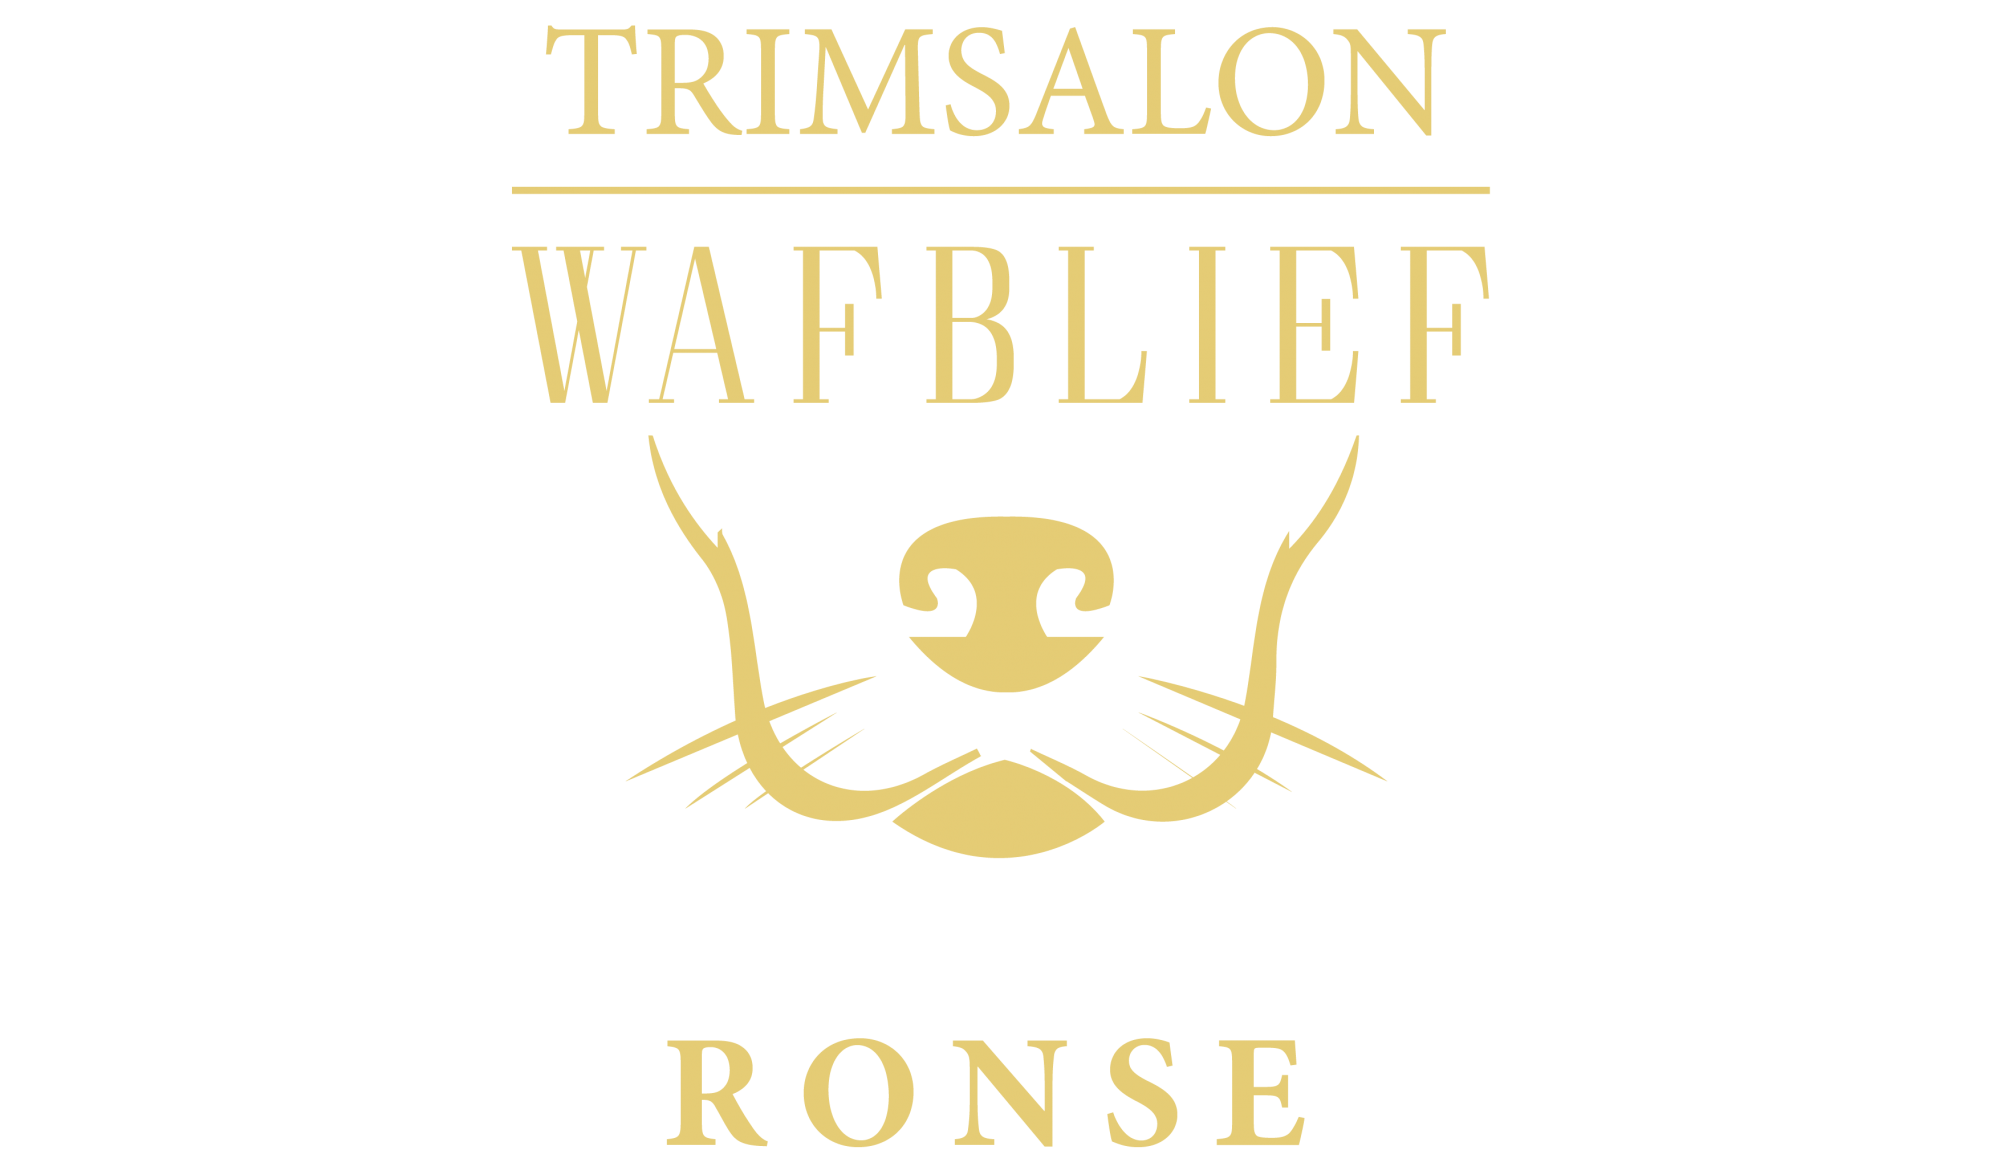 Trimsalon Wafblief